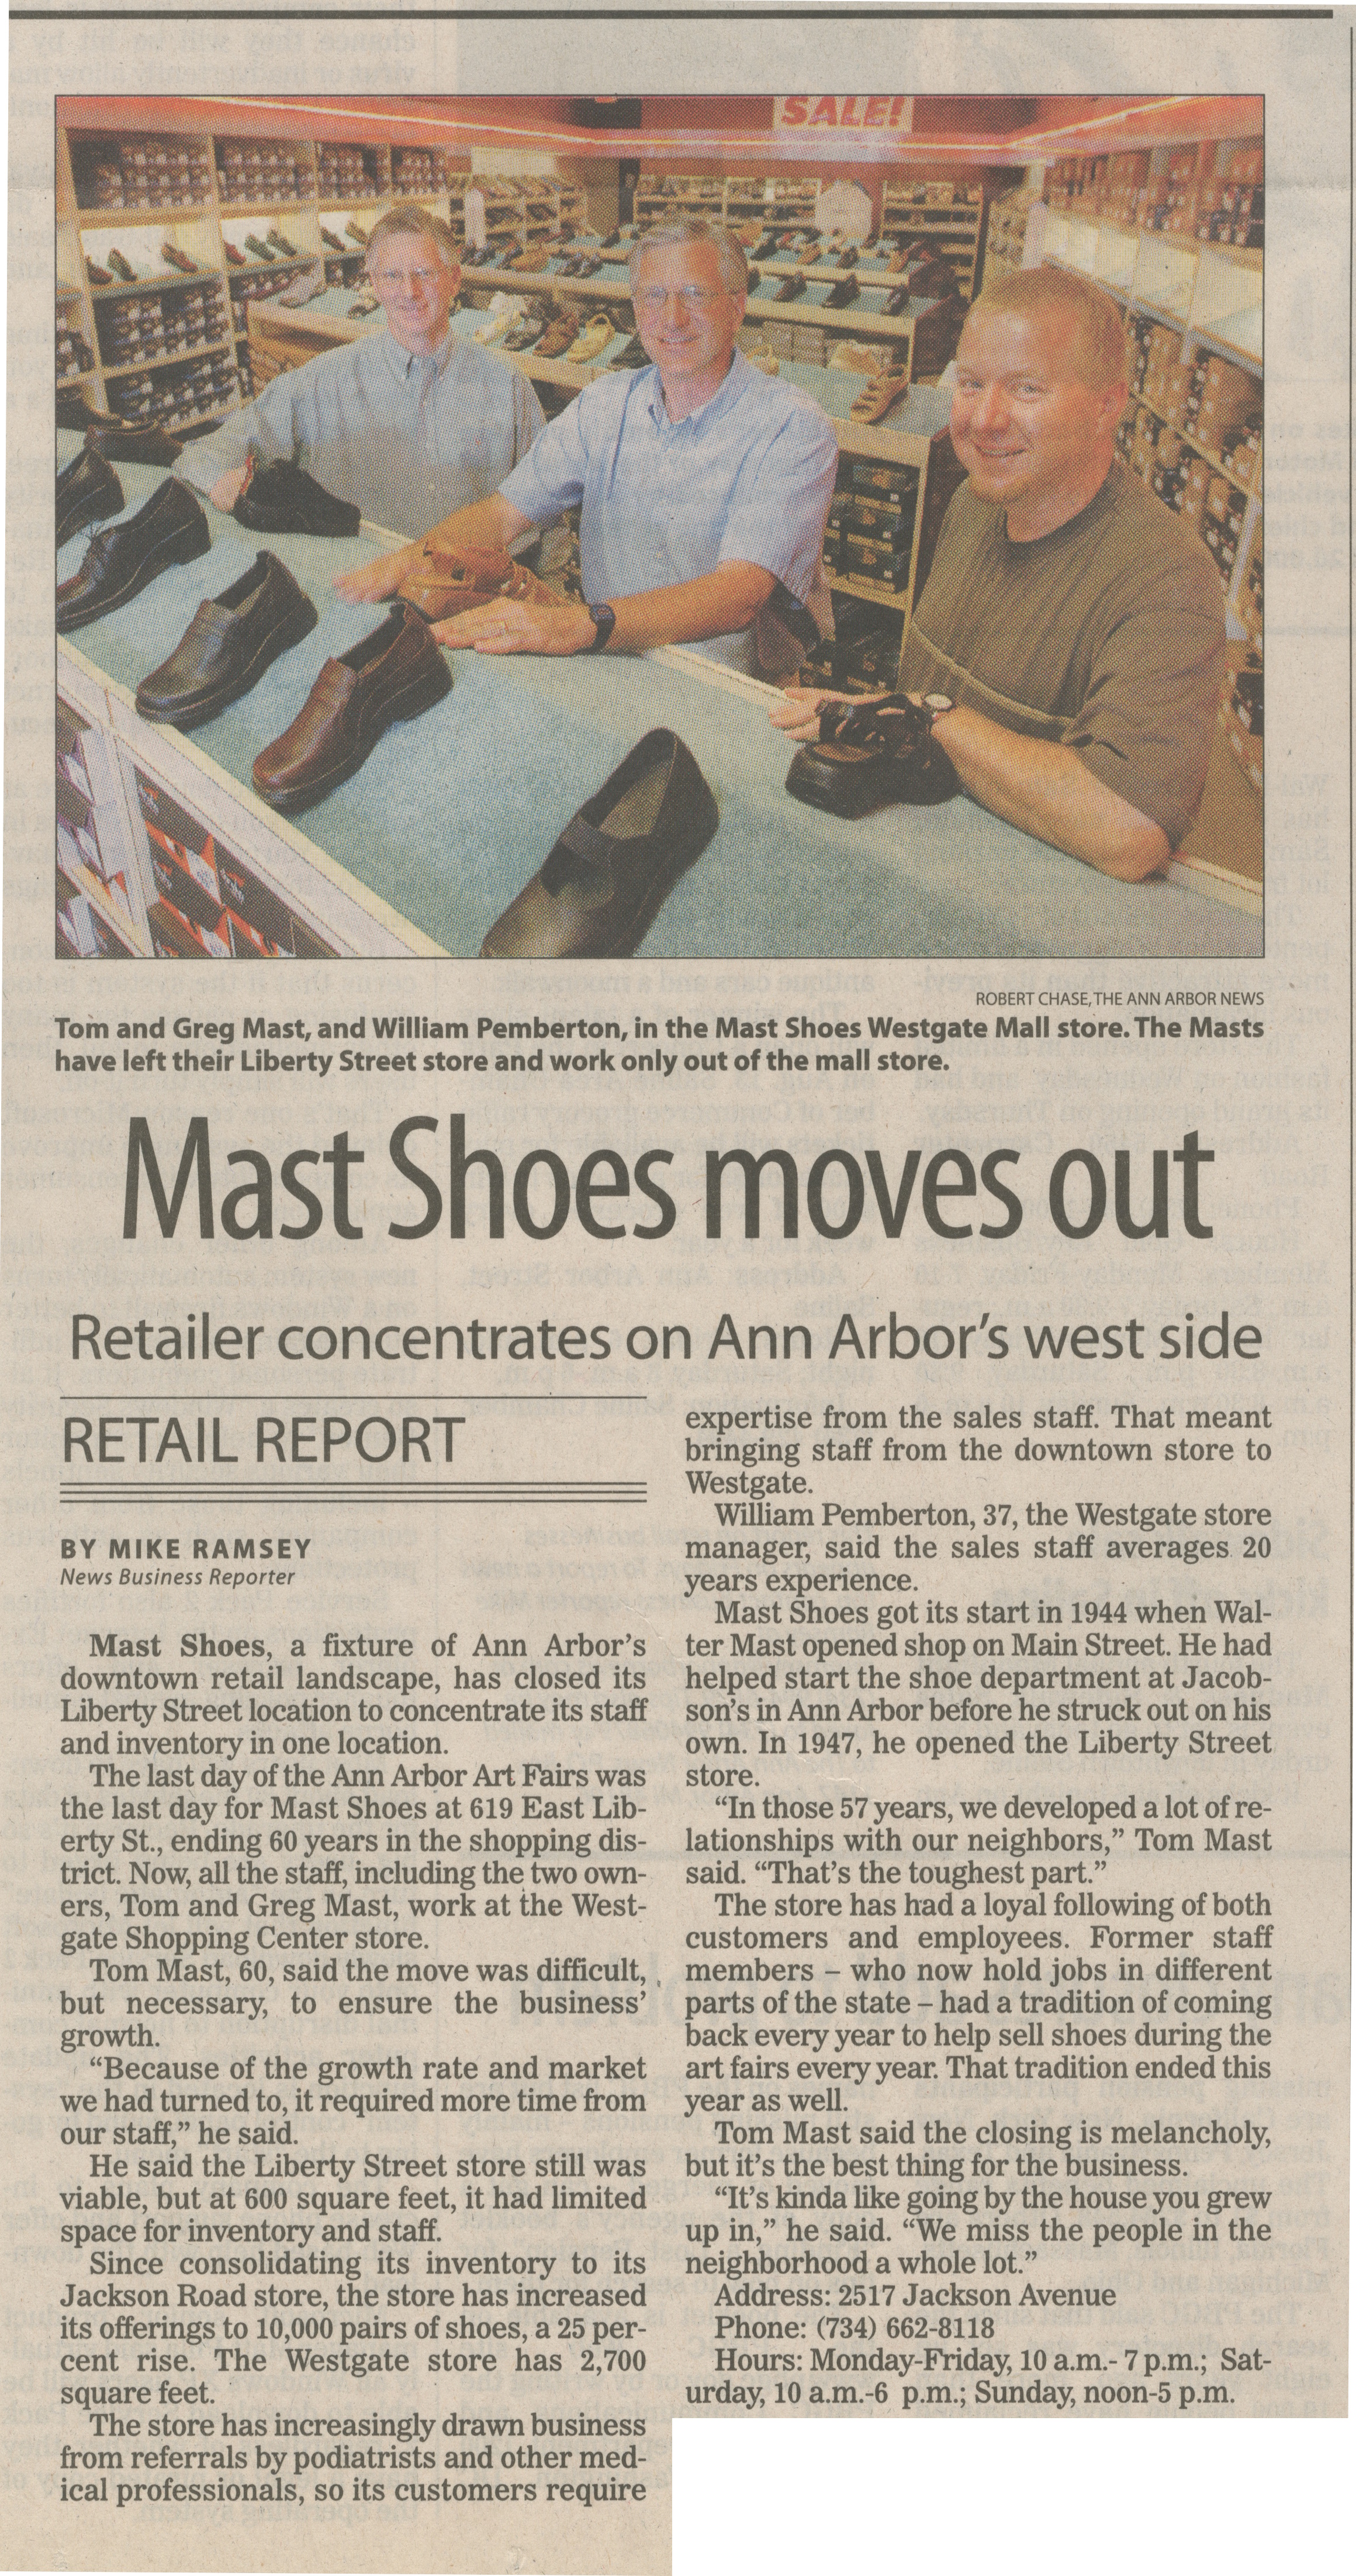 Mast Shoes Moves Out image